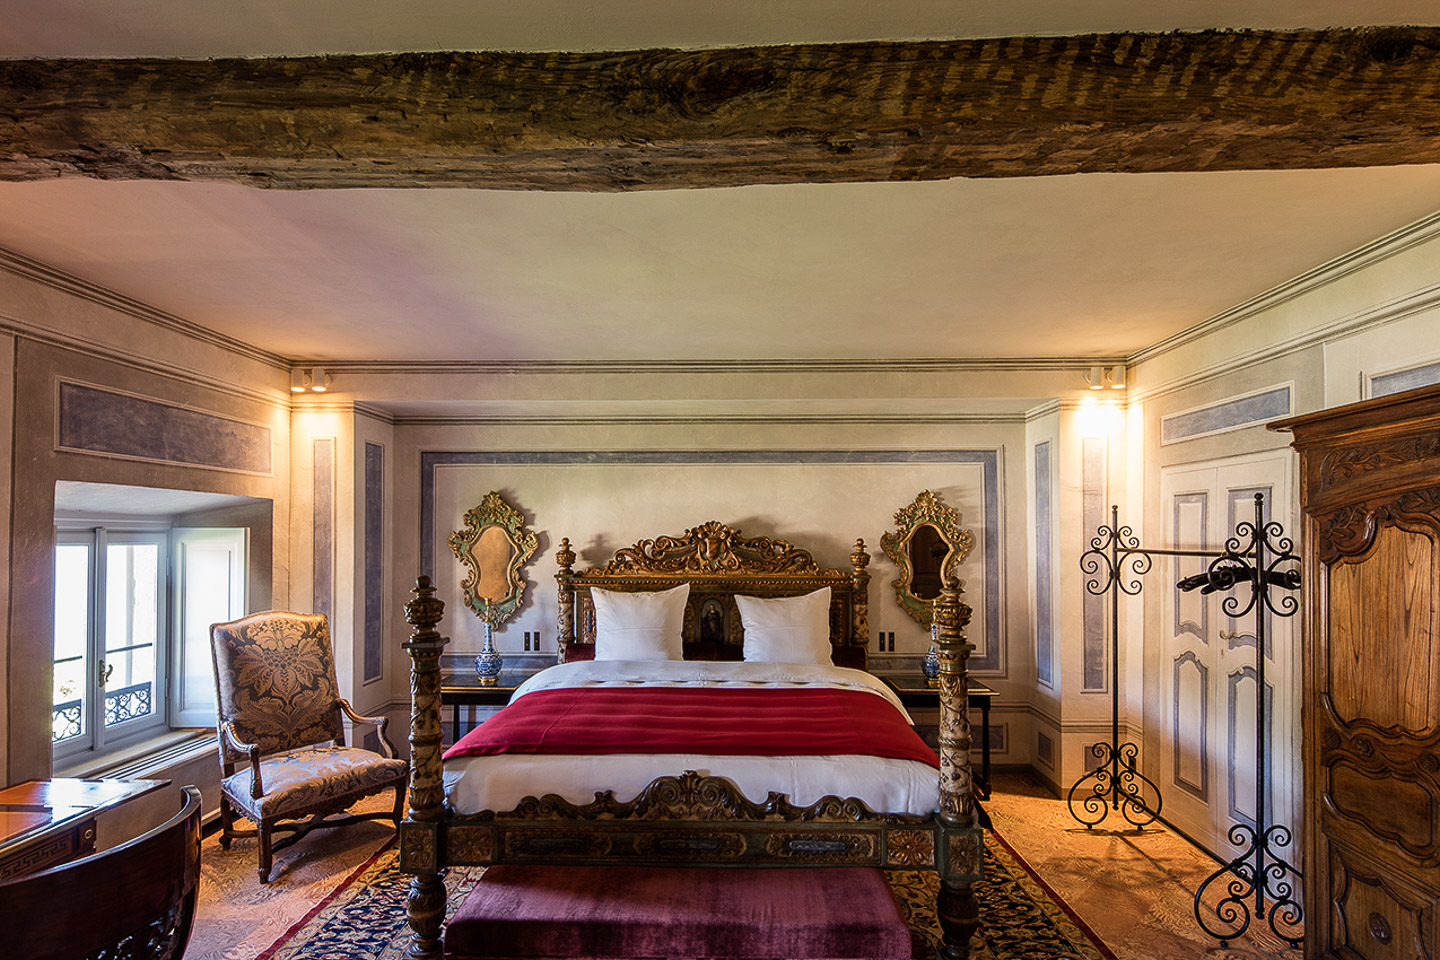 Villa Balbiano luxury property best available for accommodation rental on lake Como guests can spend night opulent luxury suites second floor ensuite bedroom 24000VB_int